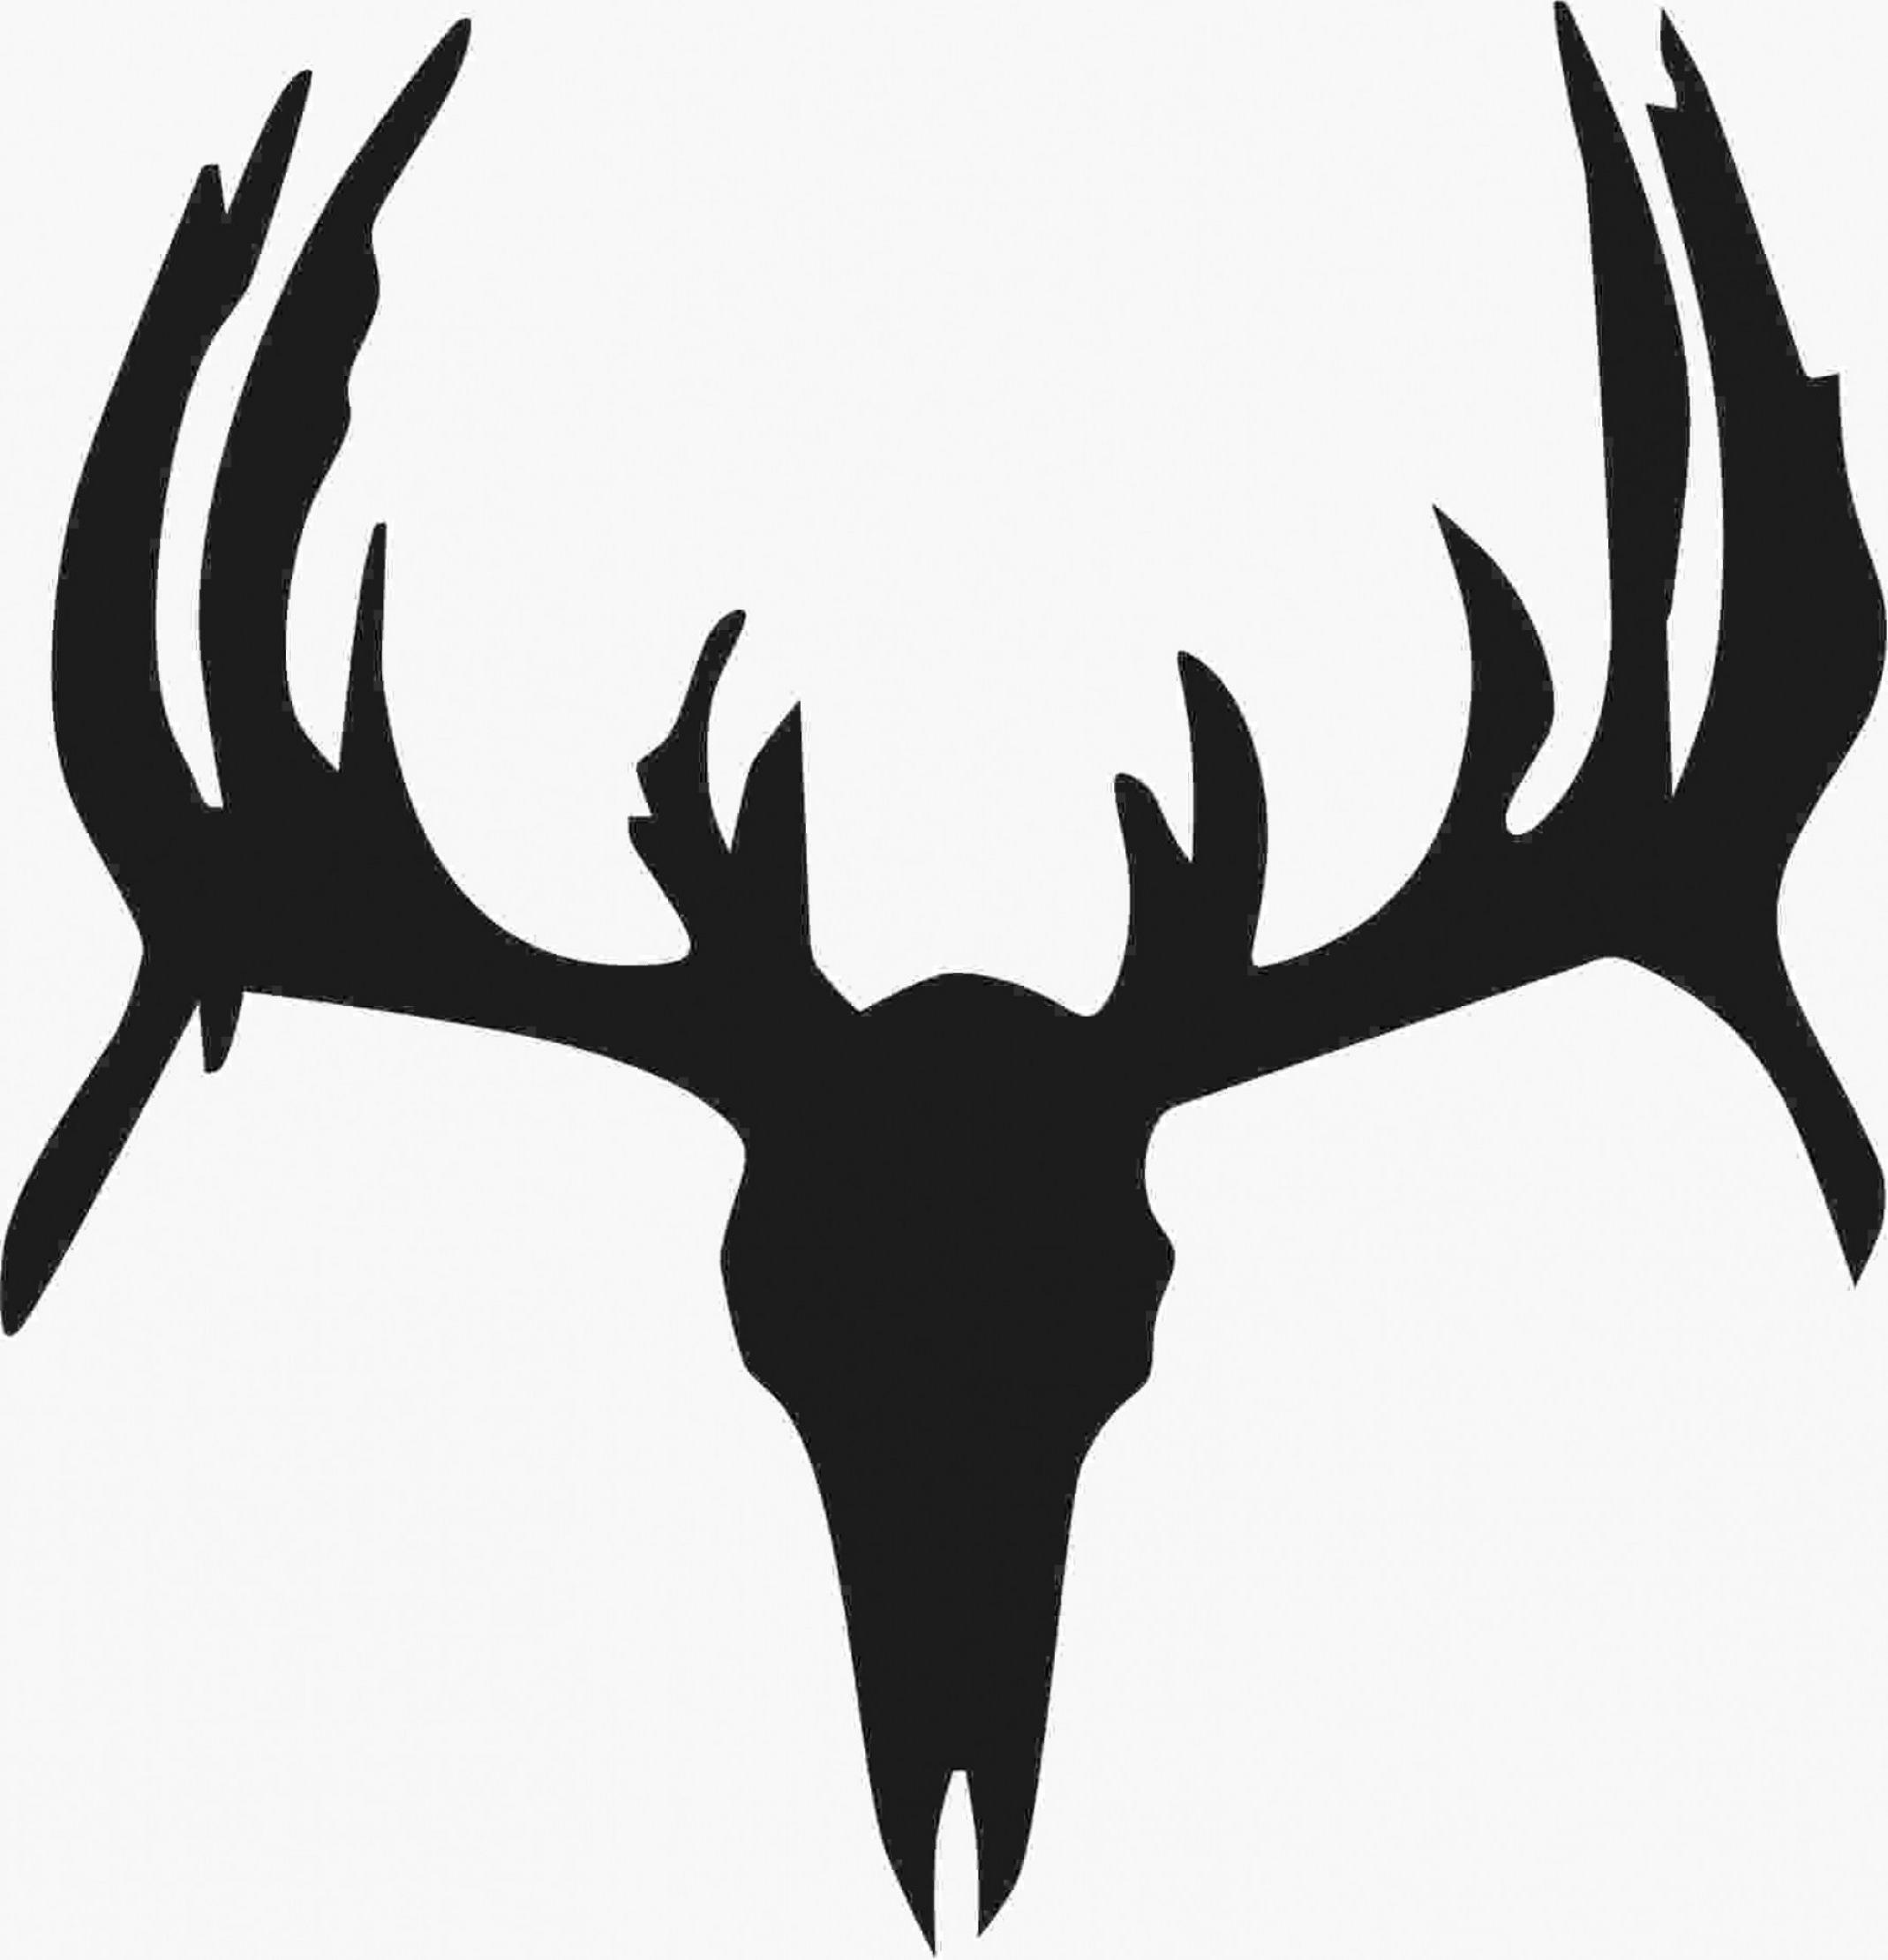 Deer skull clipart black and white vector picture Top Deer Skull Silhouette Design » Free Vector Art, Images, Graphics ... picture